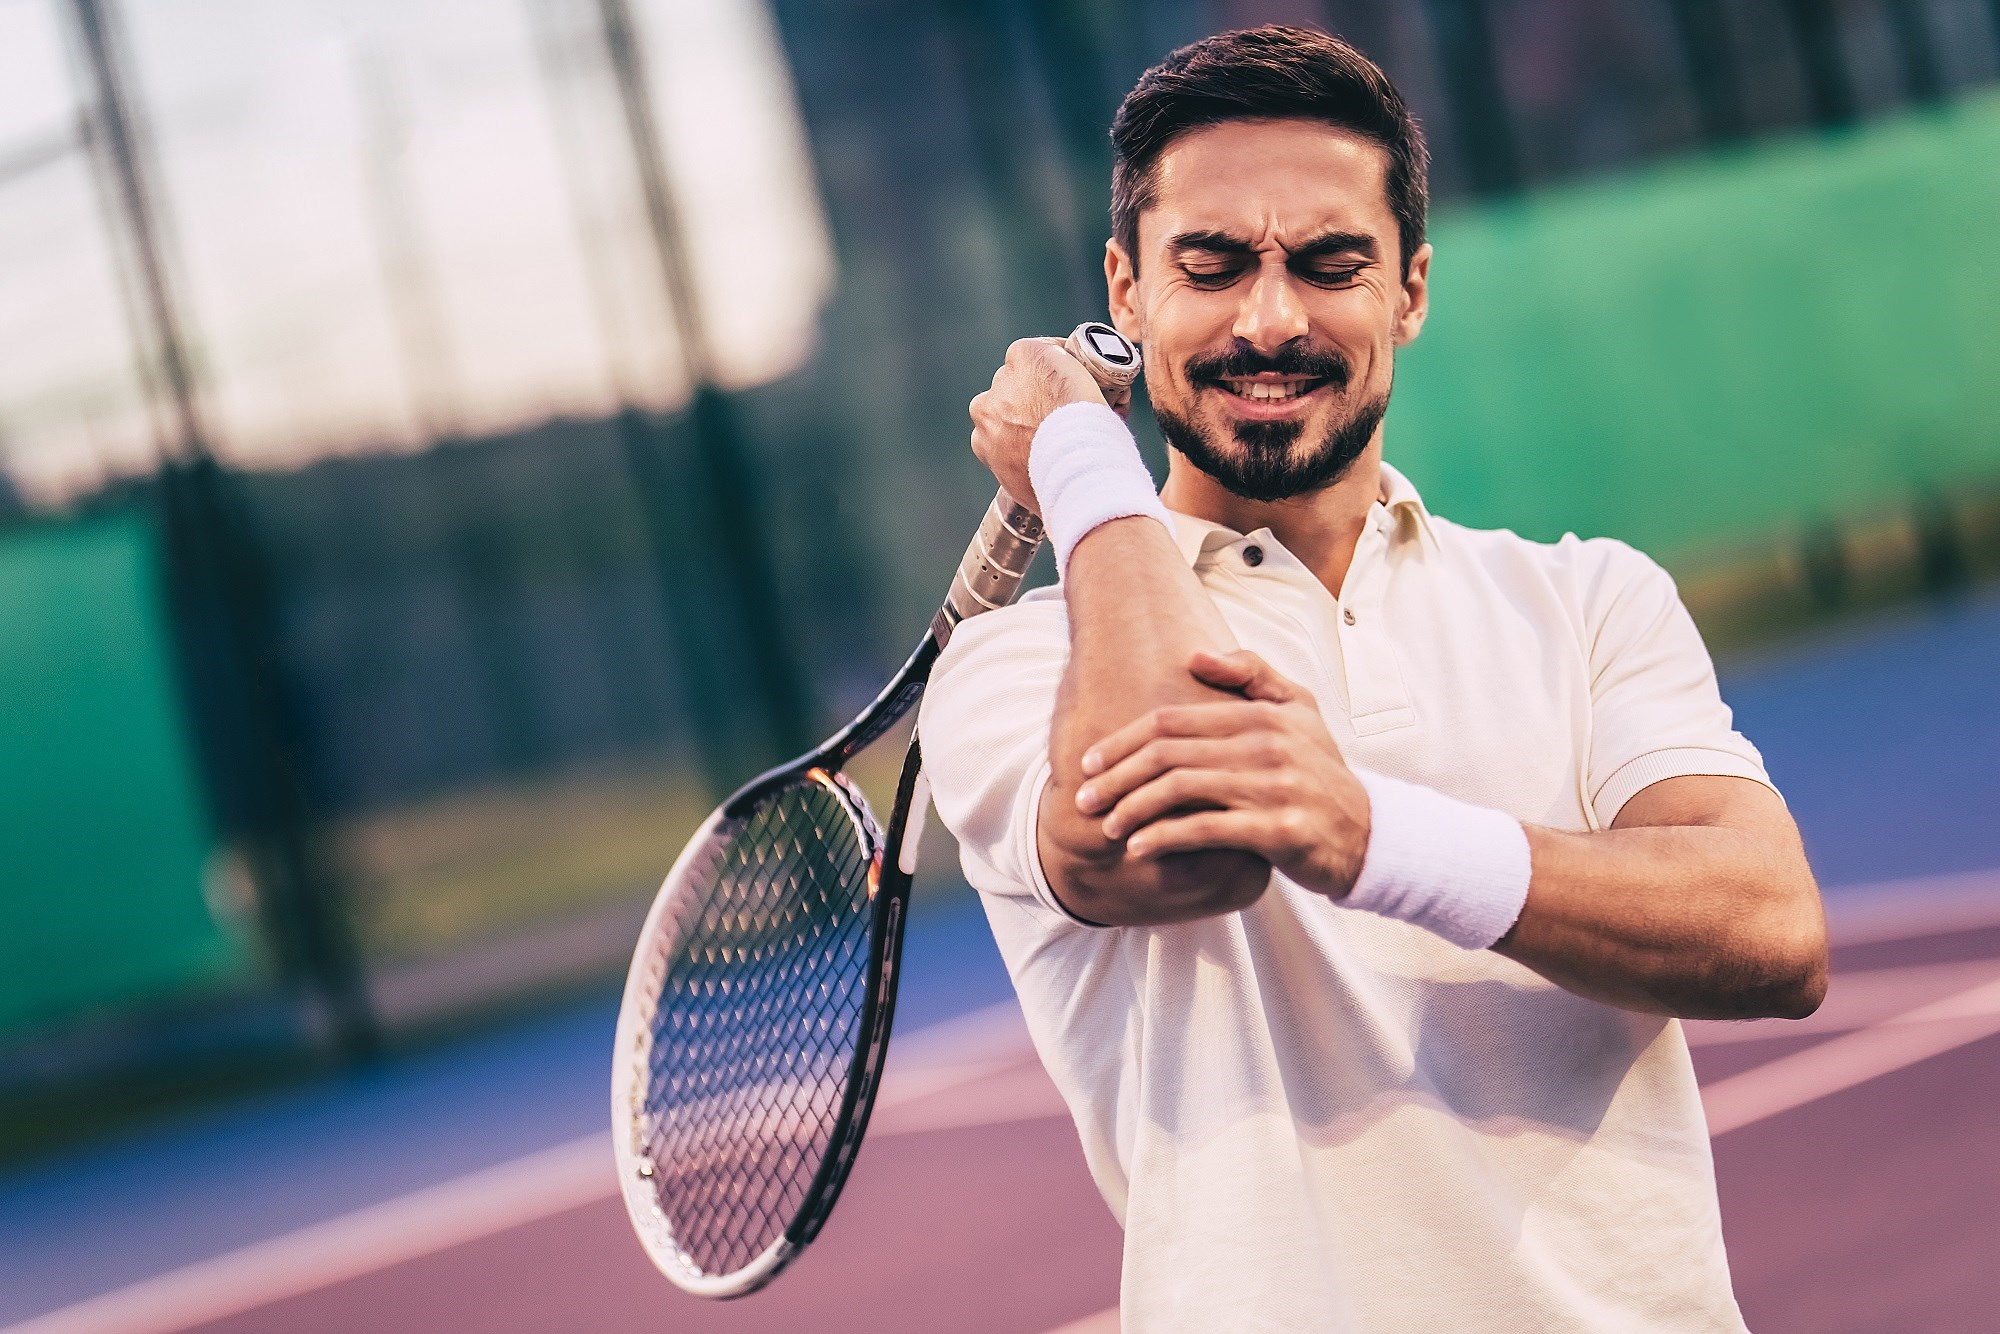 Treatments Appear No Better Than Placebo for Tennis Elbow